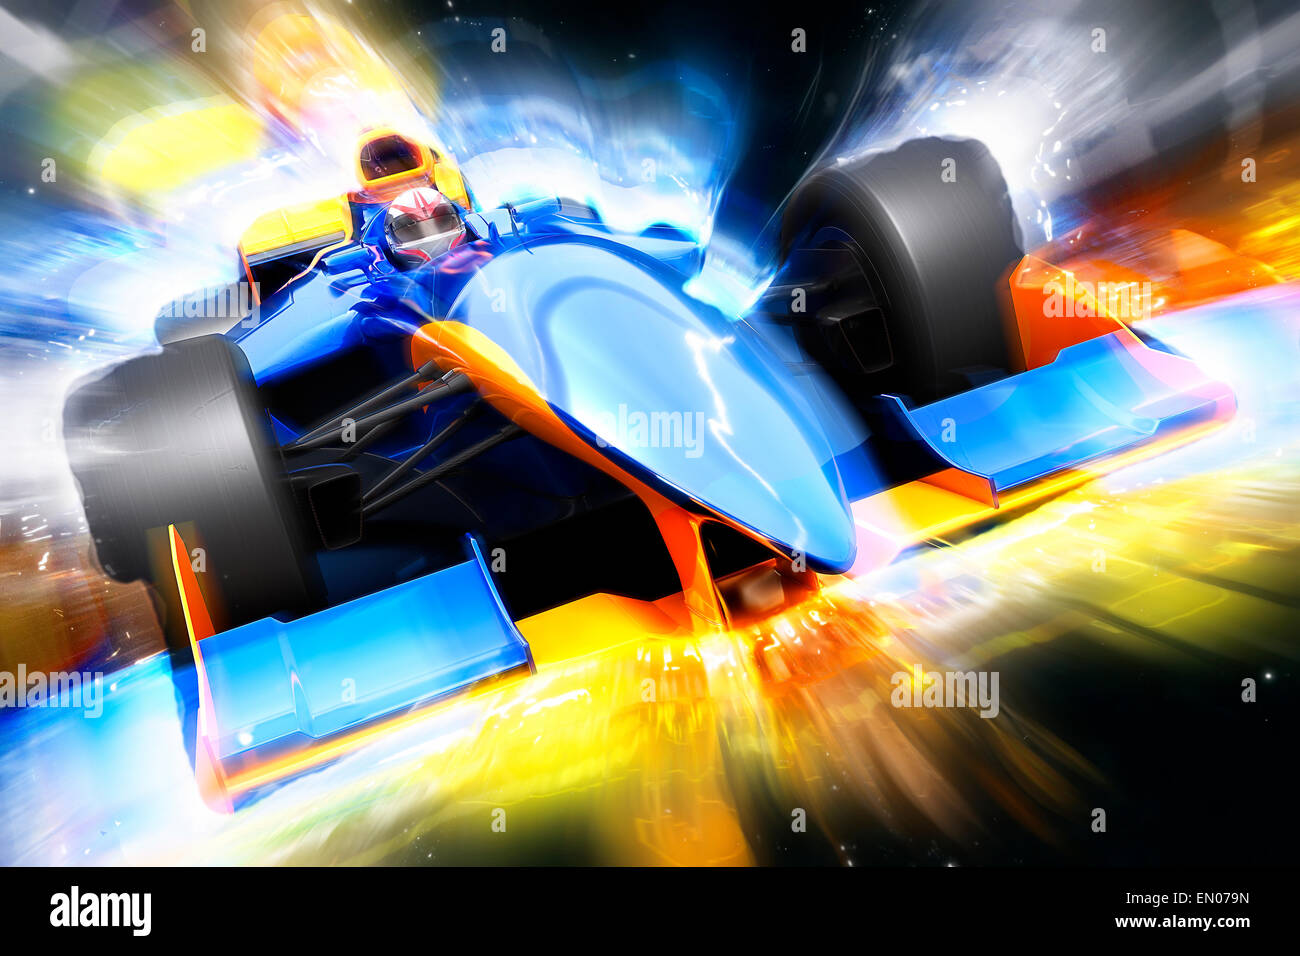 F1 bolide with light effect. Race car with no brand name is designed and modelled by myself - Stock Image